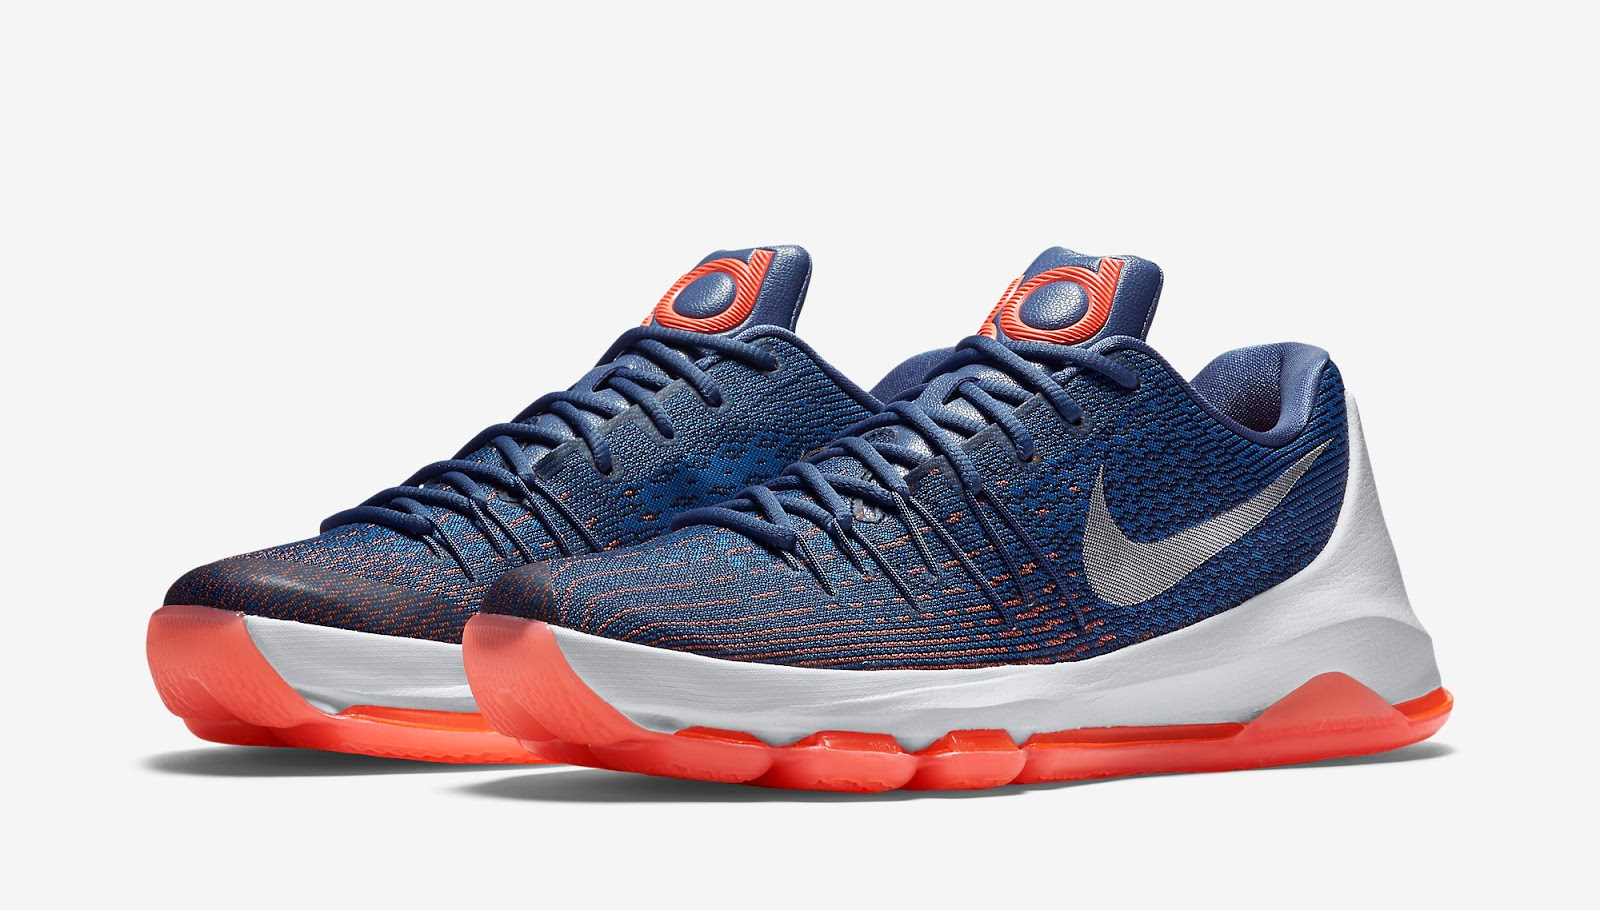 46b60d99ca5f ... real ajordanxi your 1 source for sneaker release dates nike kd 8 ocean  fog white midnight